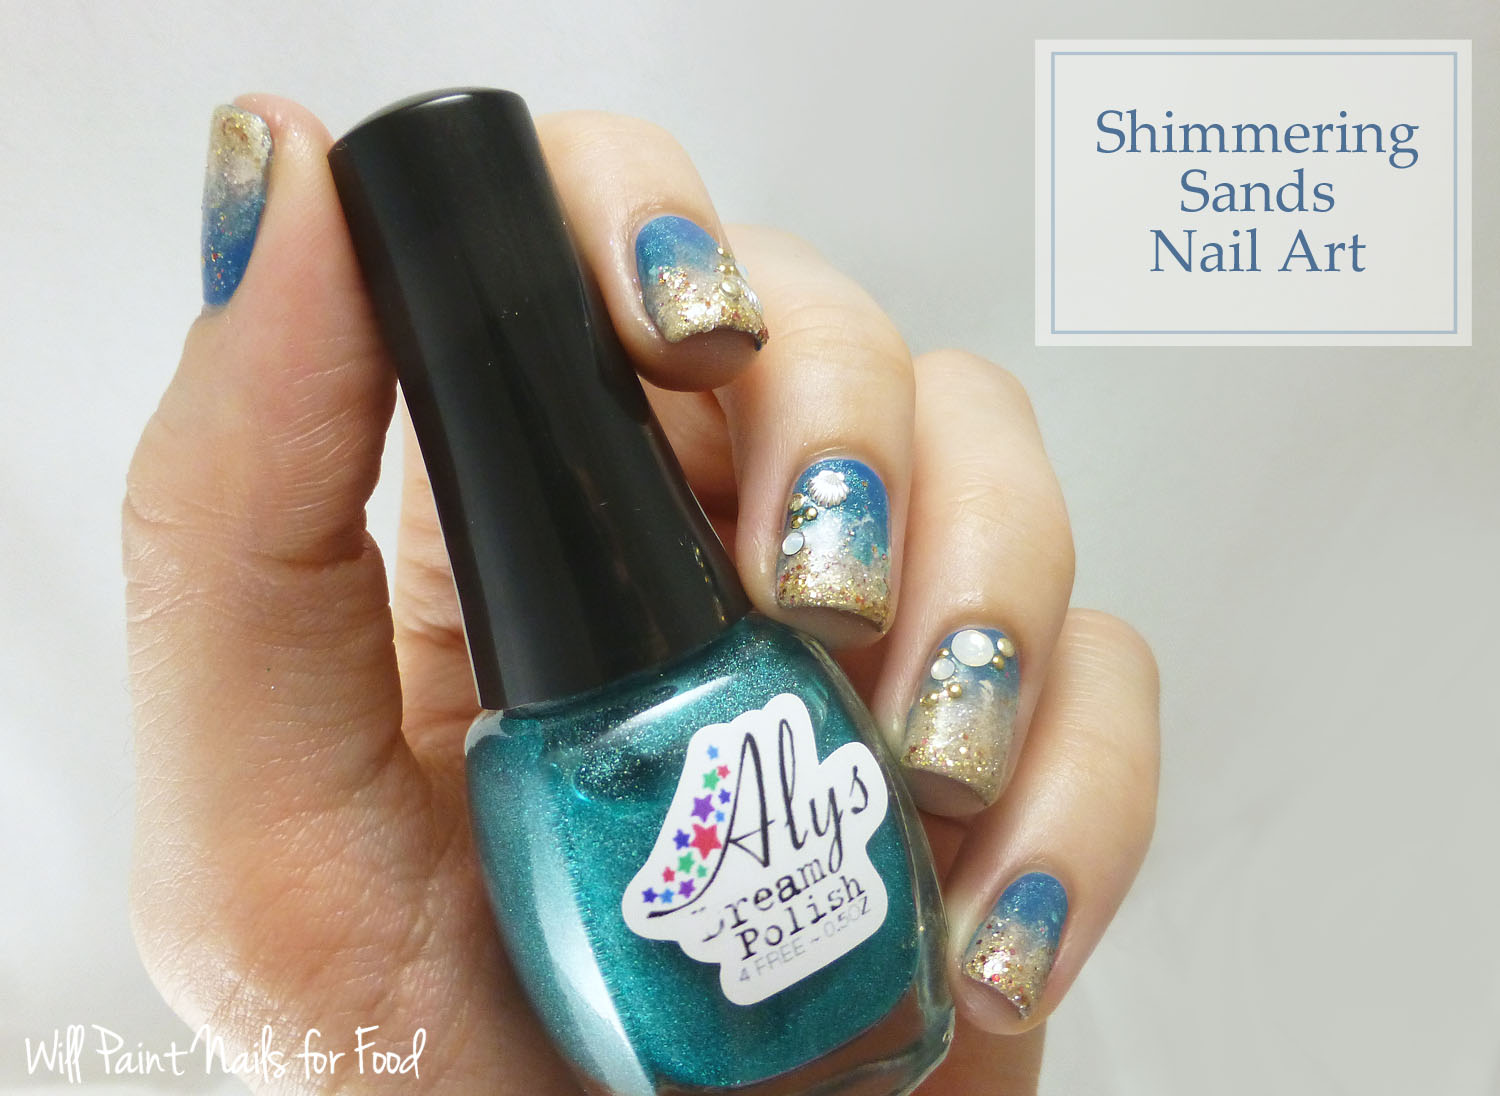 Shimmering sands beach nail art